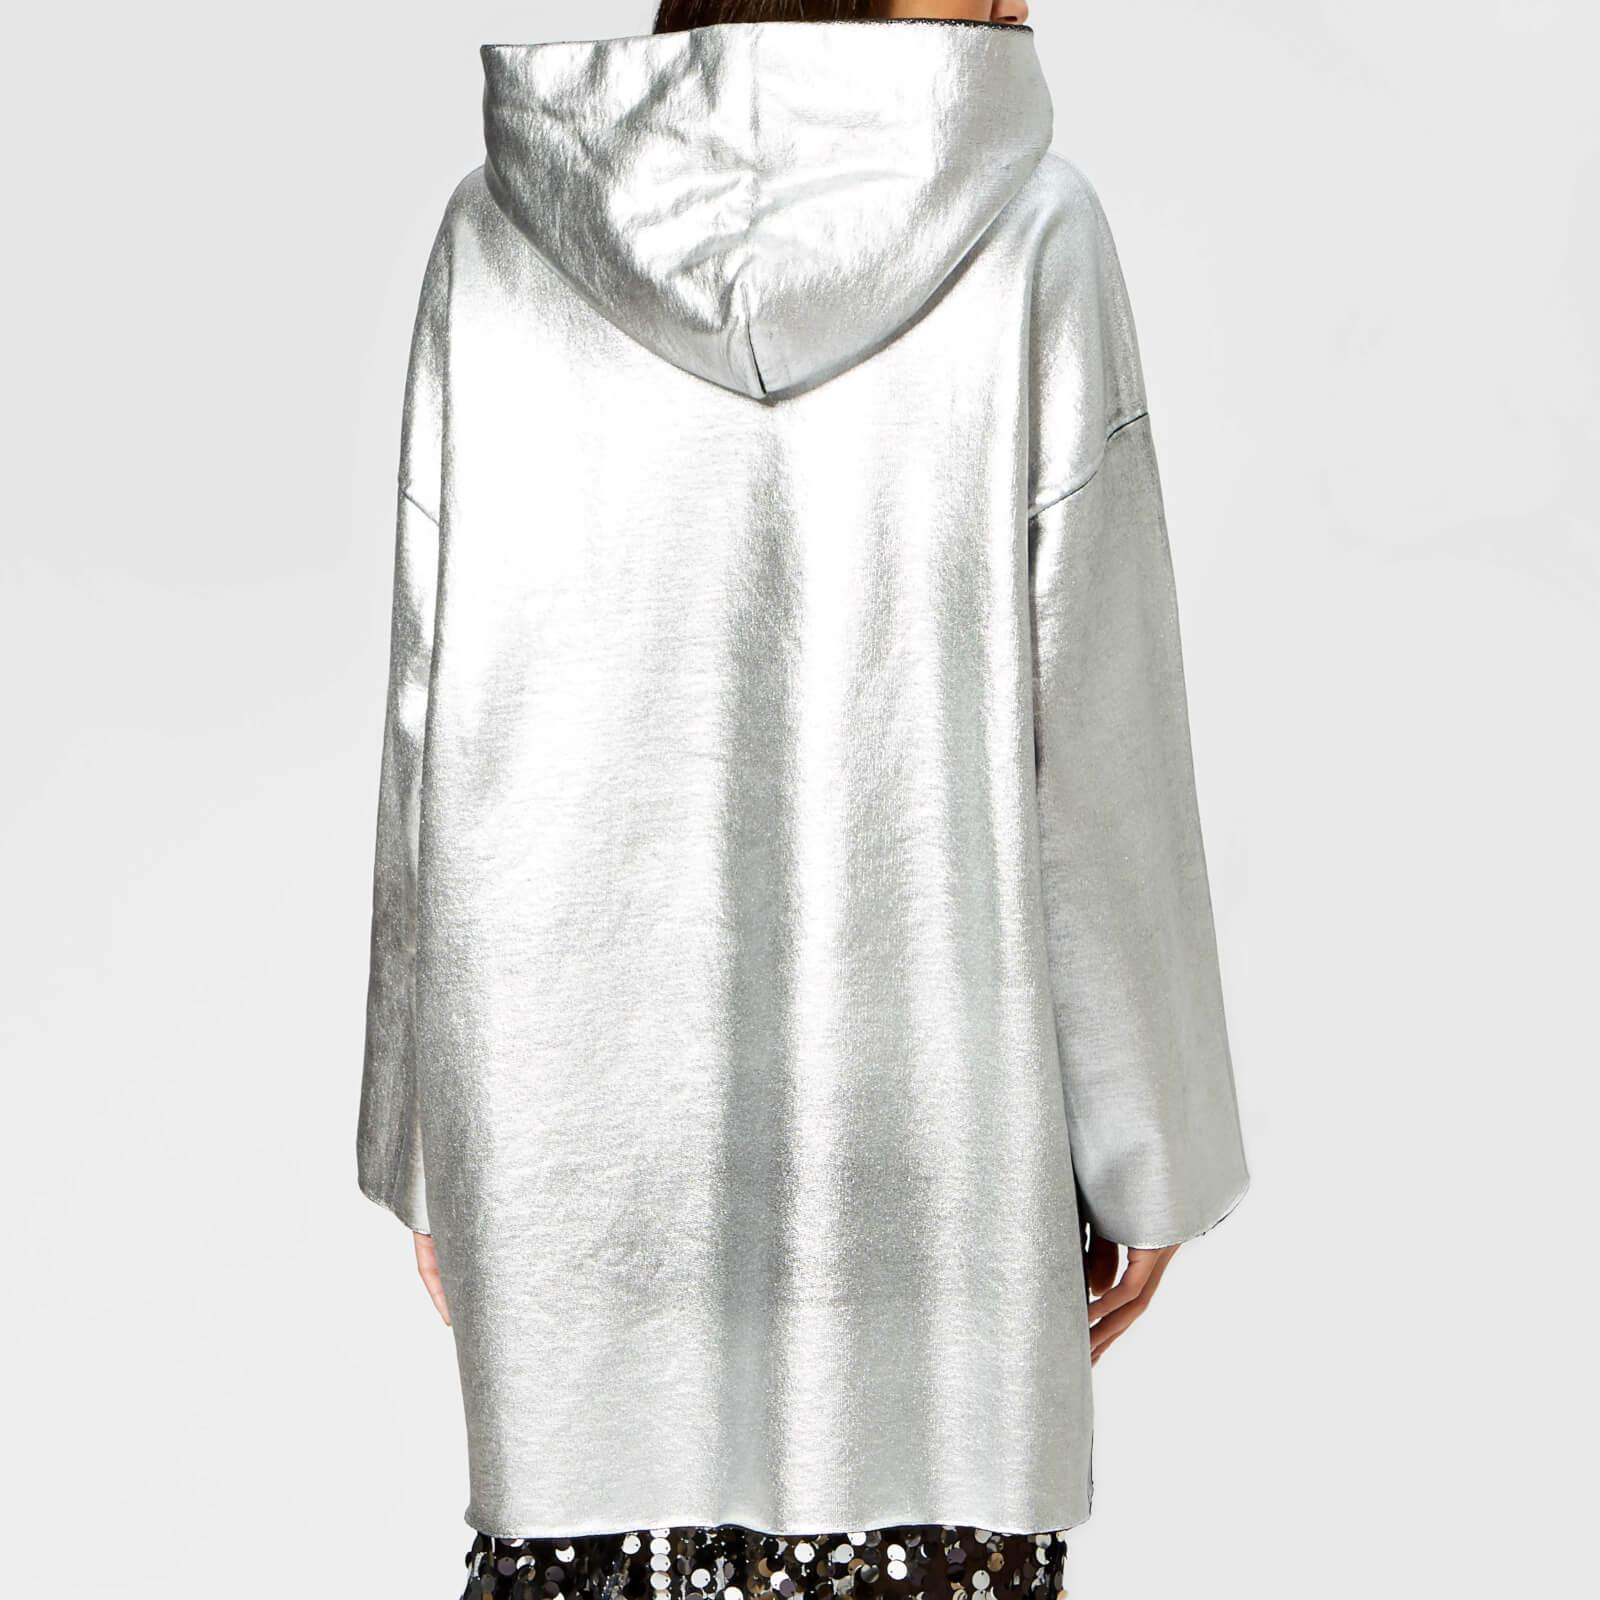 5d3268e54bb Tap to visit site. MM6 by Maison Martin Margiela - Metallic Oversized Hooded  Top - Lyst